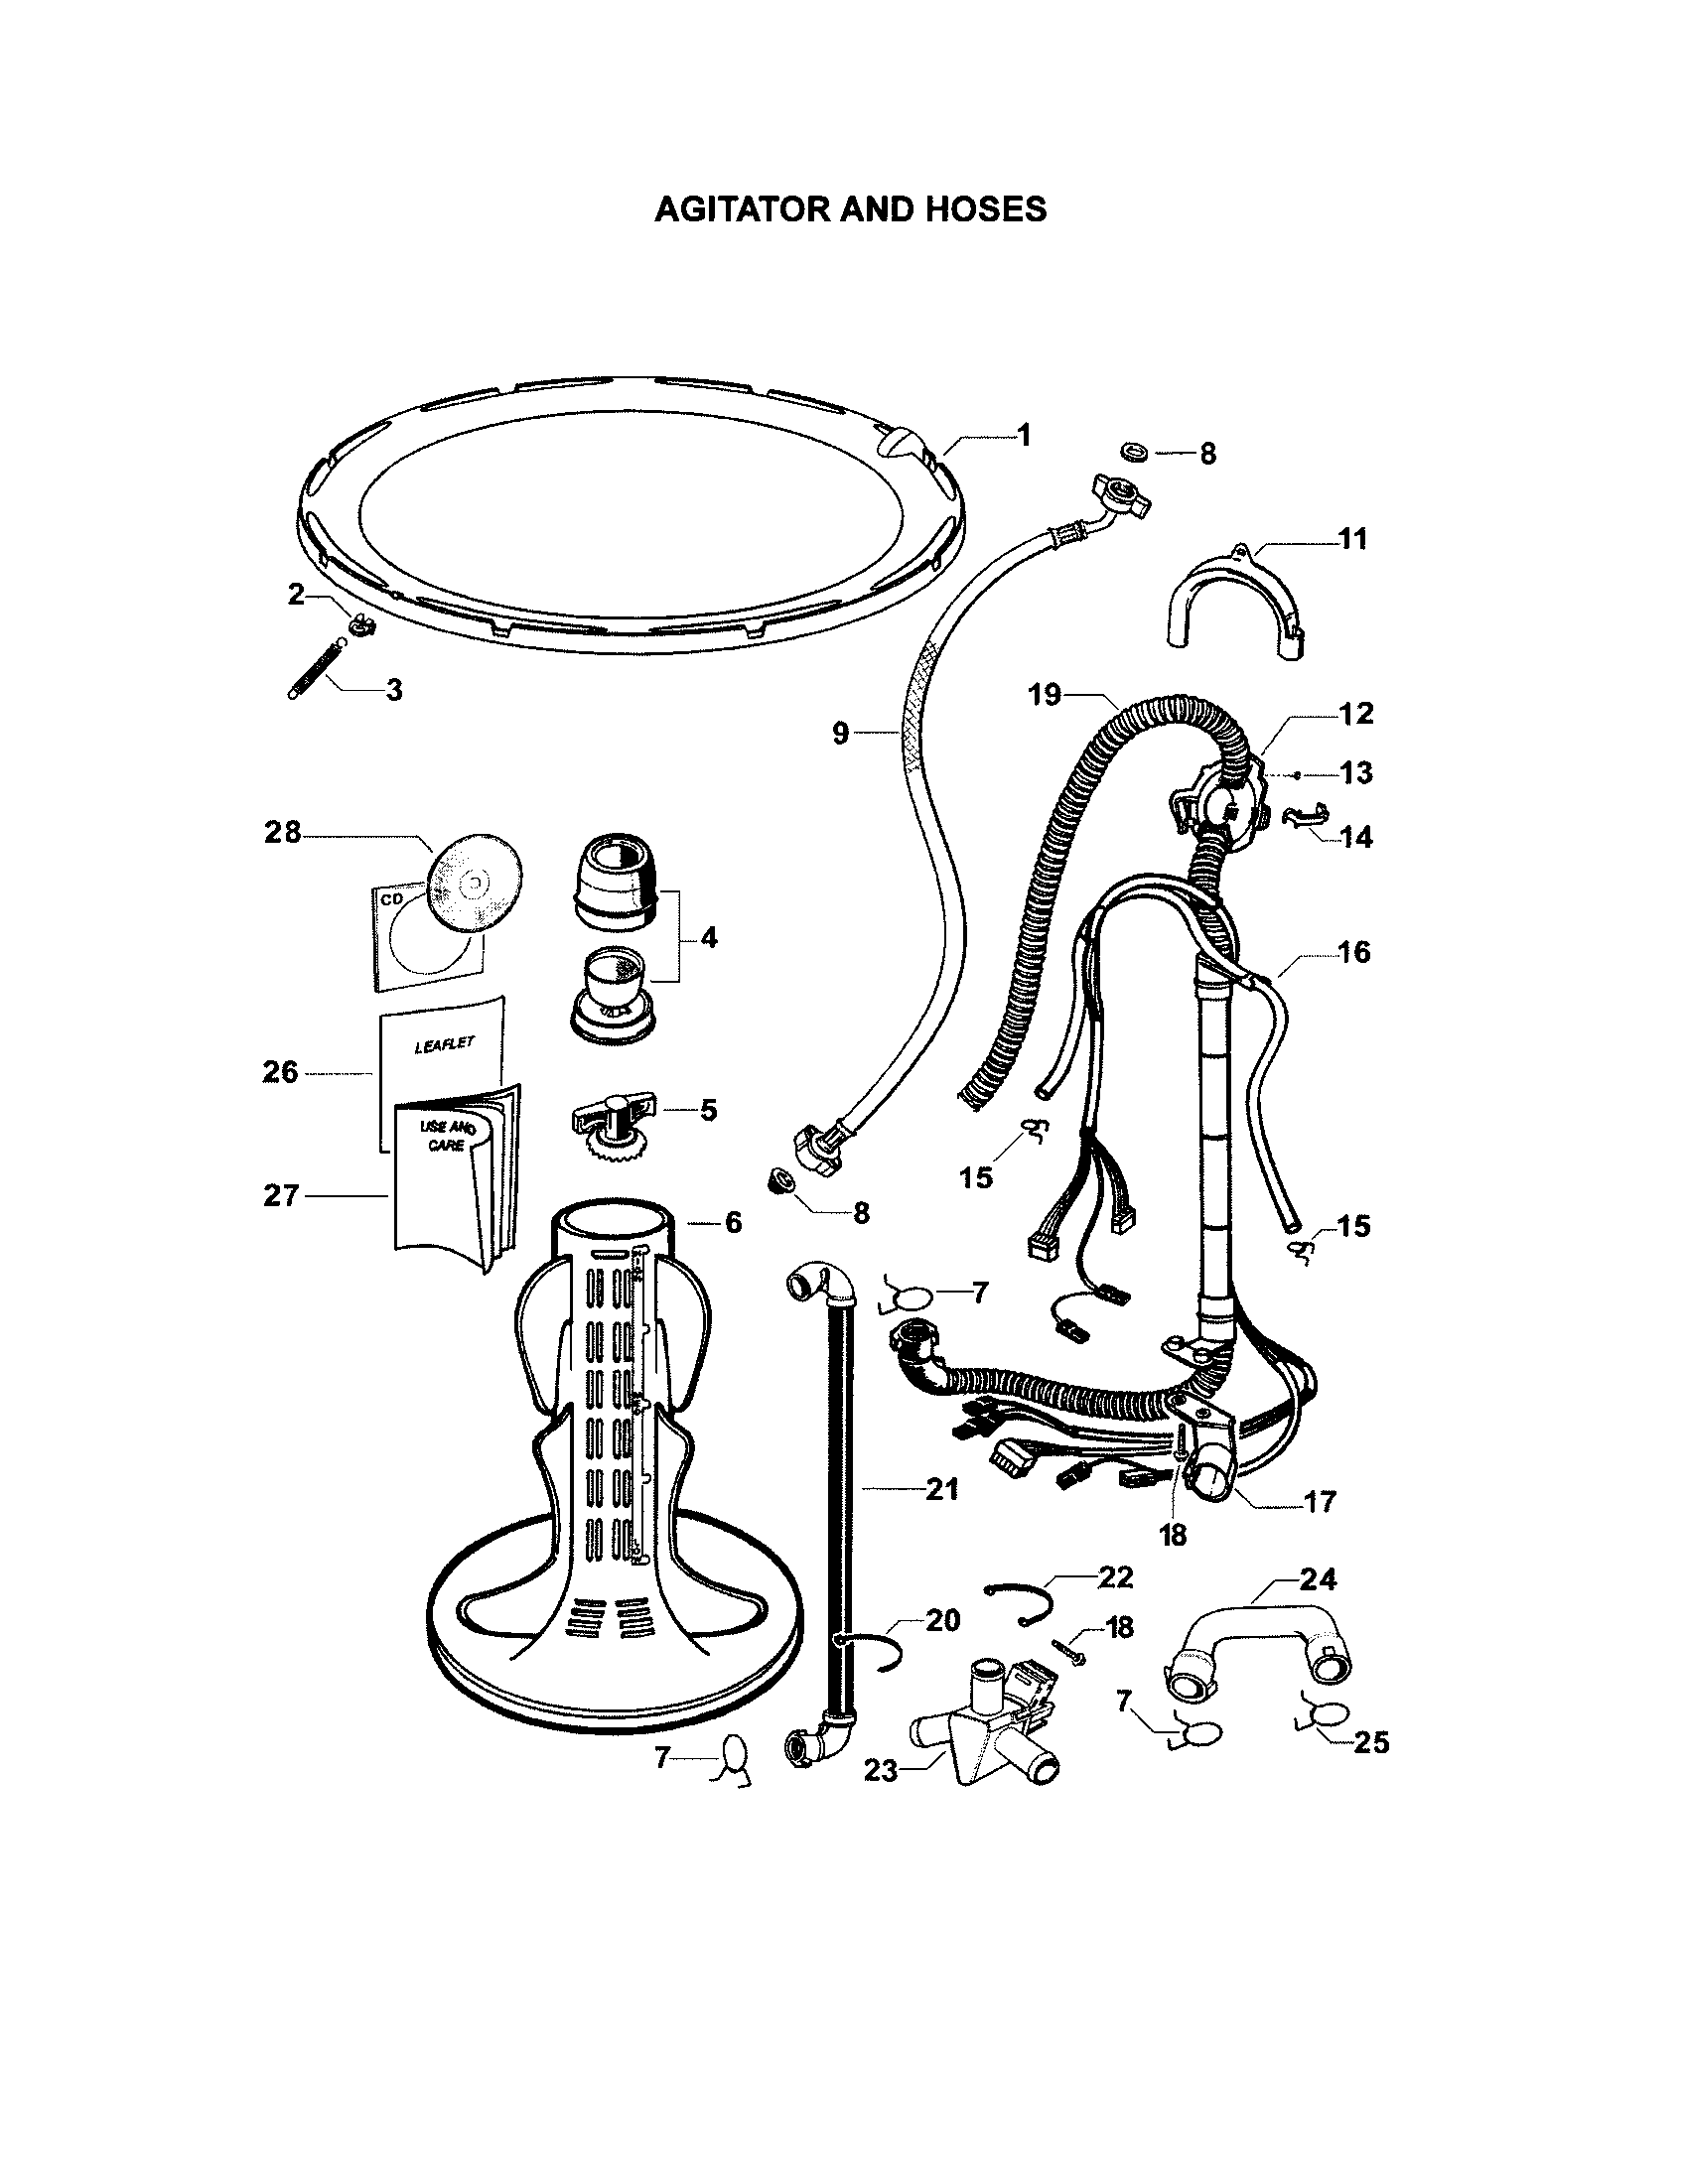 front load washer parts diagram carrier wiring air handler fisher-paykel model gwl11-96151 residential washers genuine